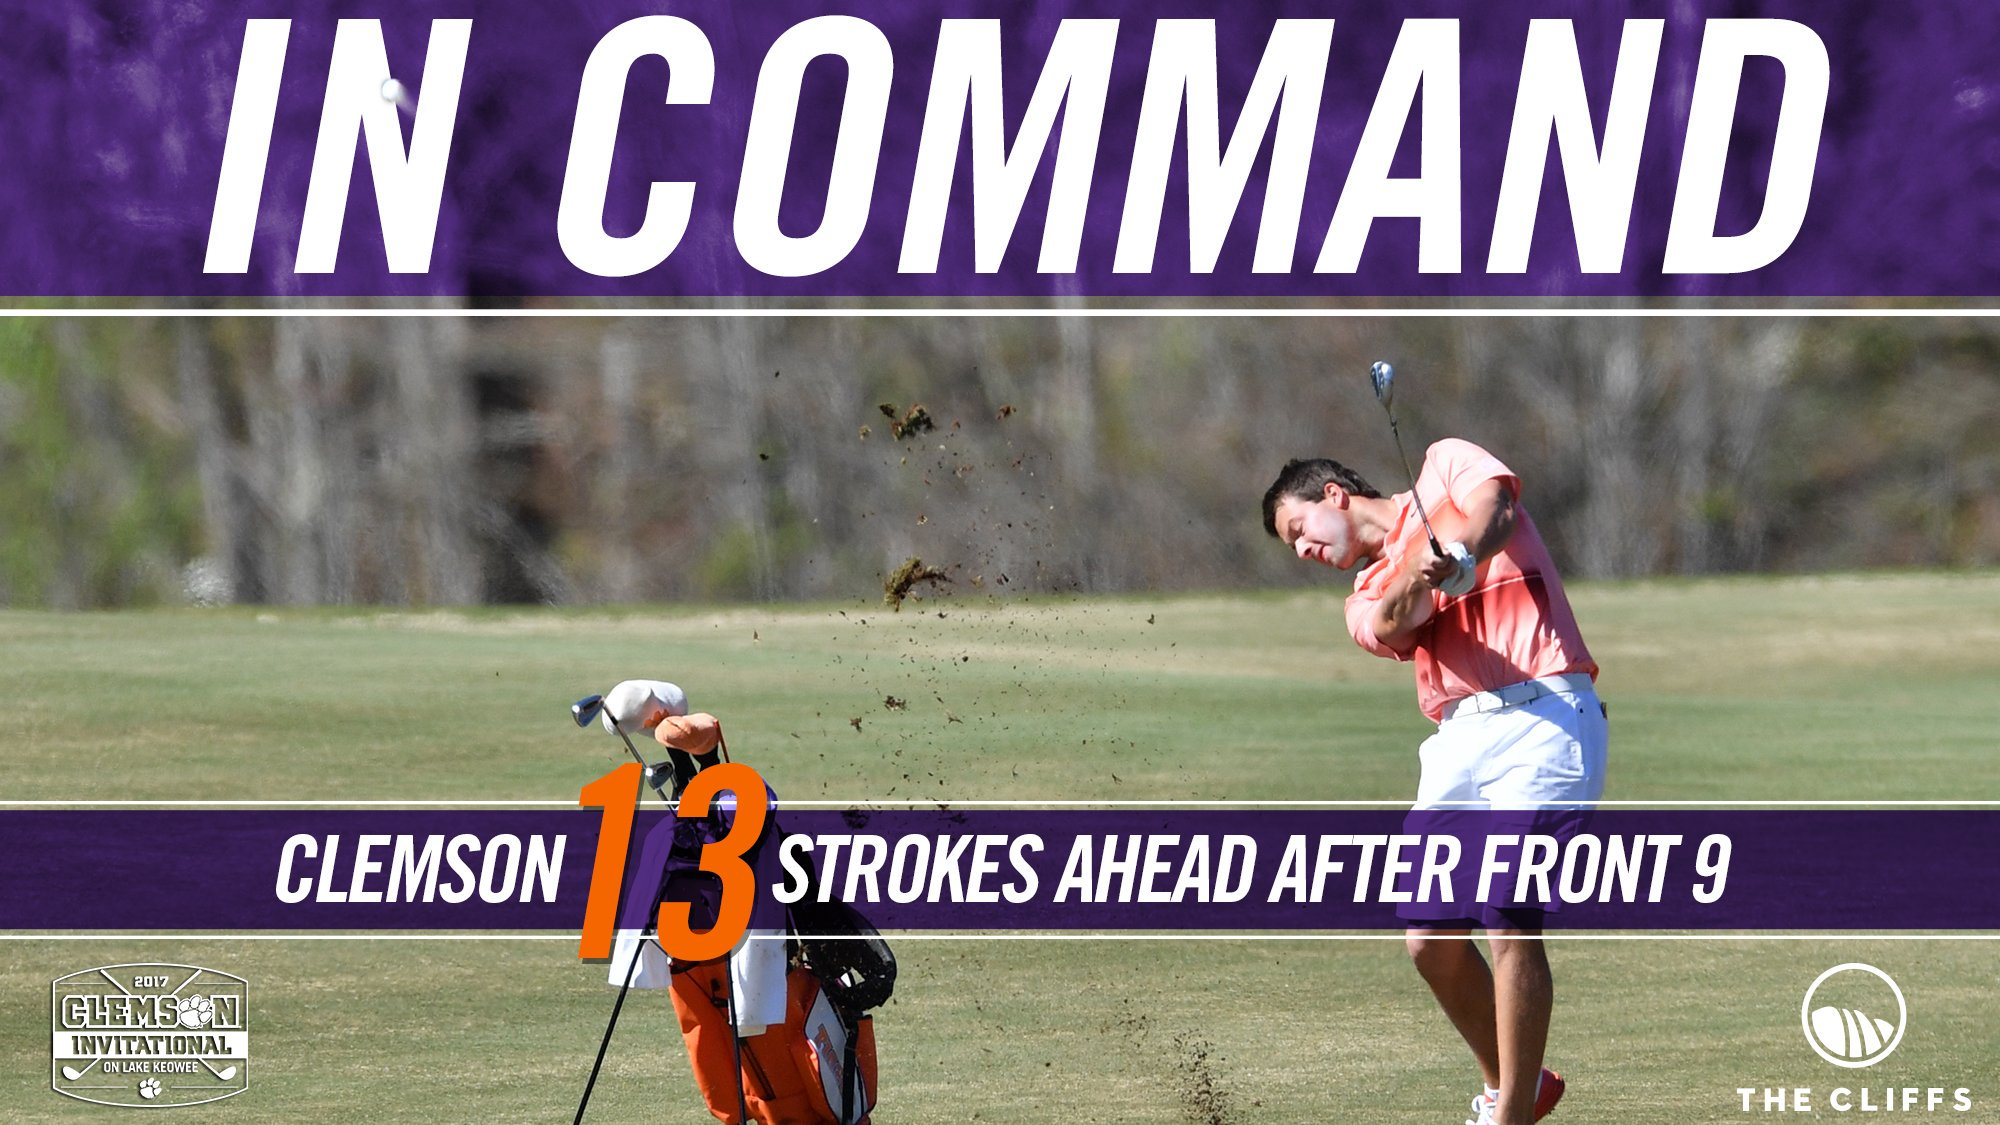 Collected and In Command  Tigers finish the Front 9 with a 13 stroke lead 👏 #ClemsonInvitational  LIVE STATS: https://t.co/zQjxP6fEmW https://t.co/Bhux1piYQ3